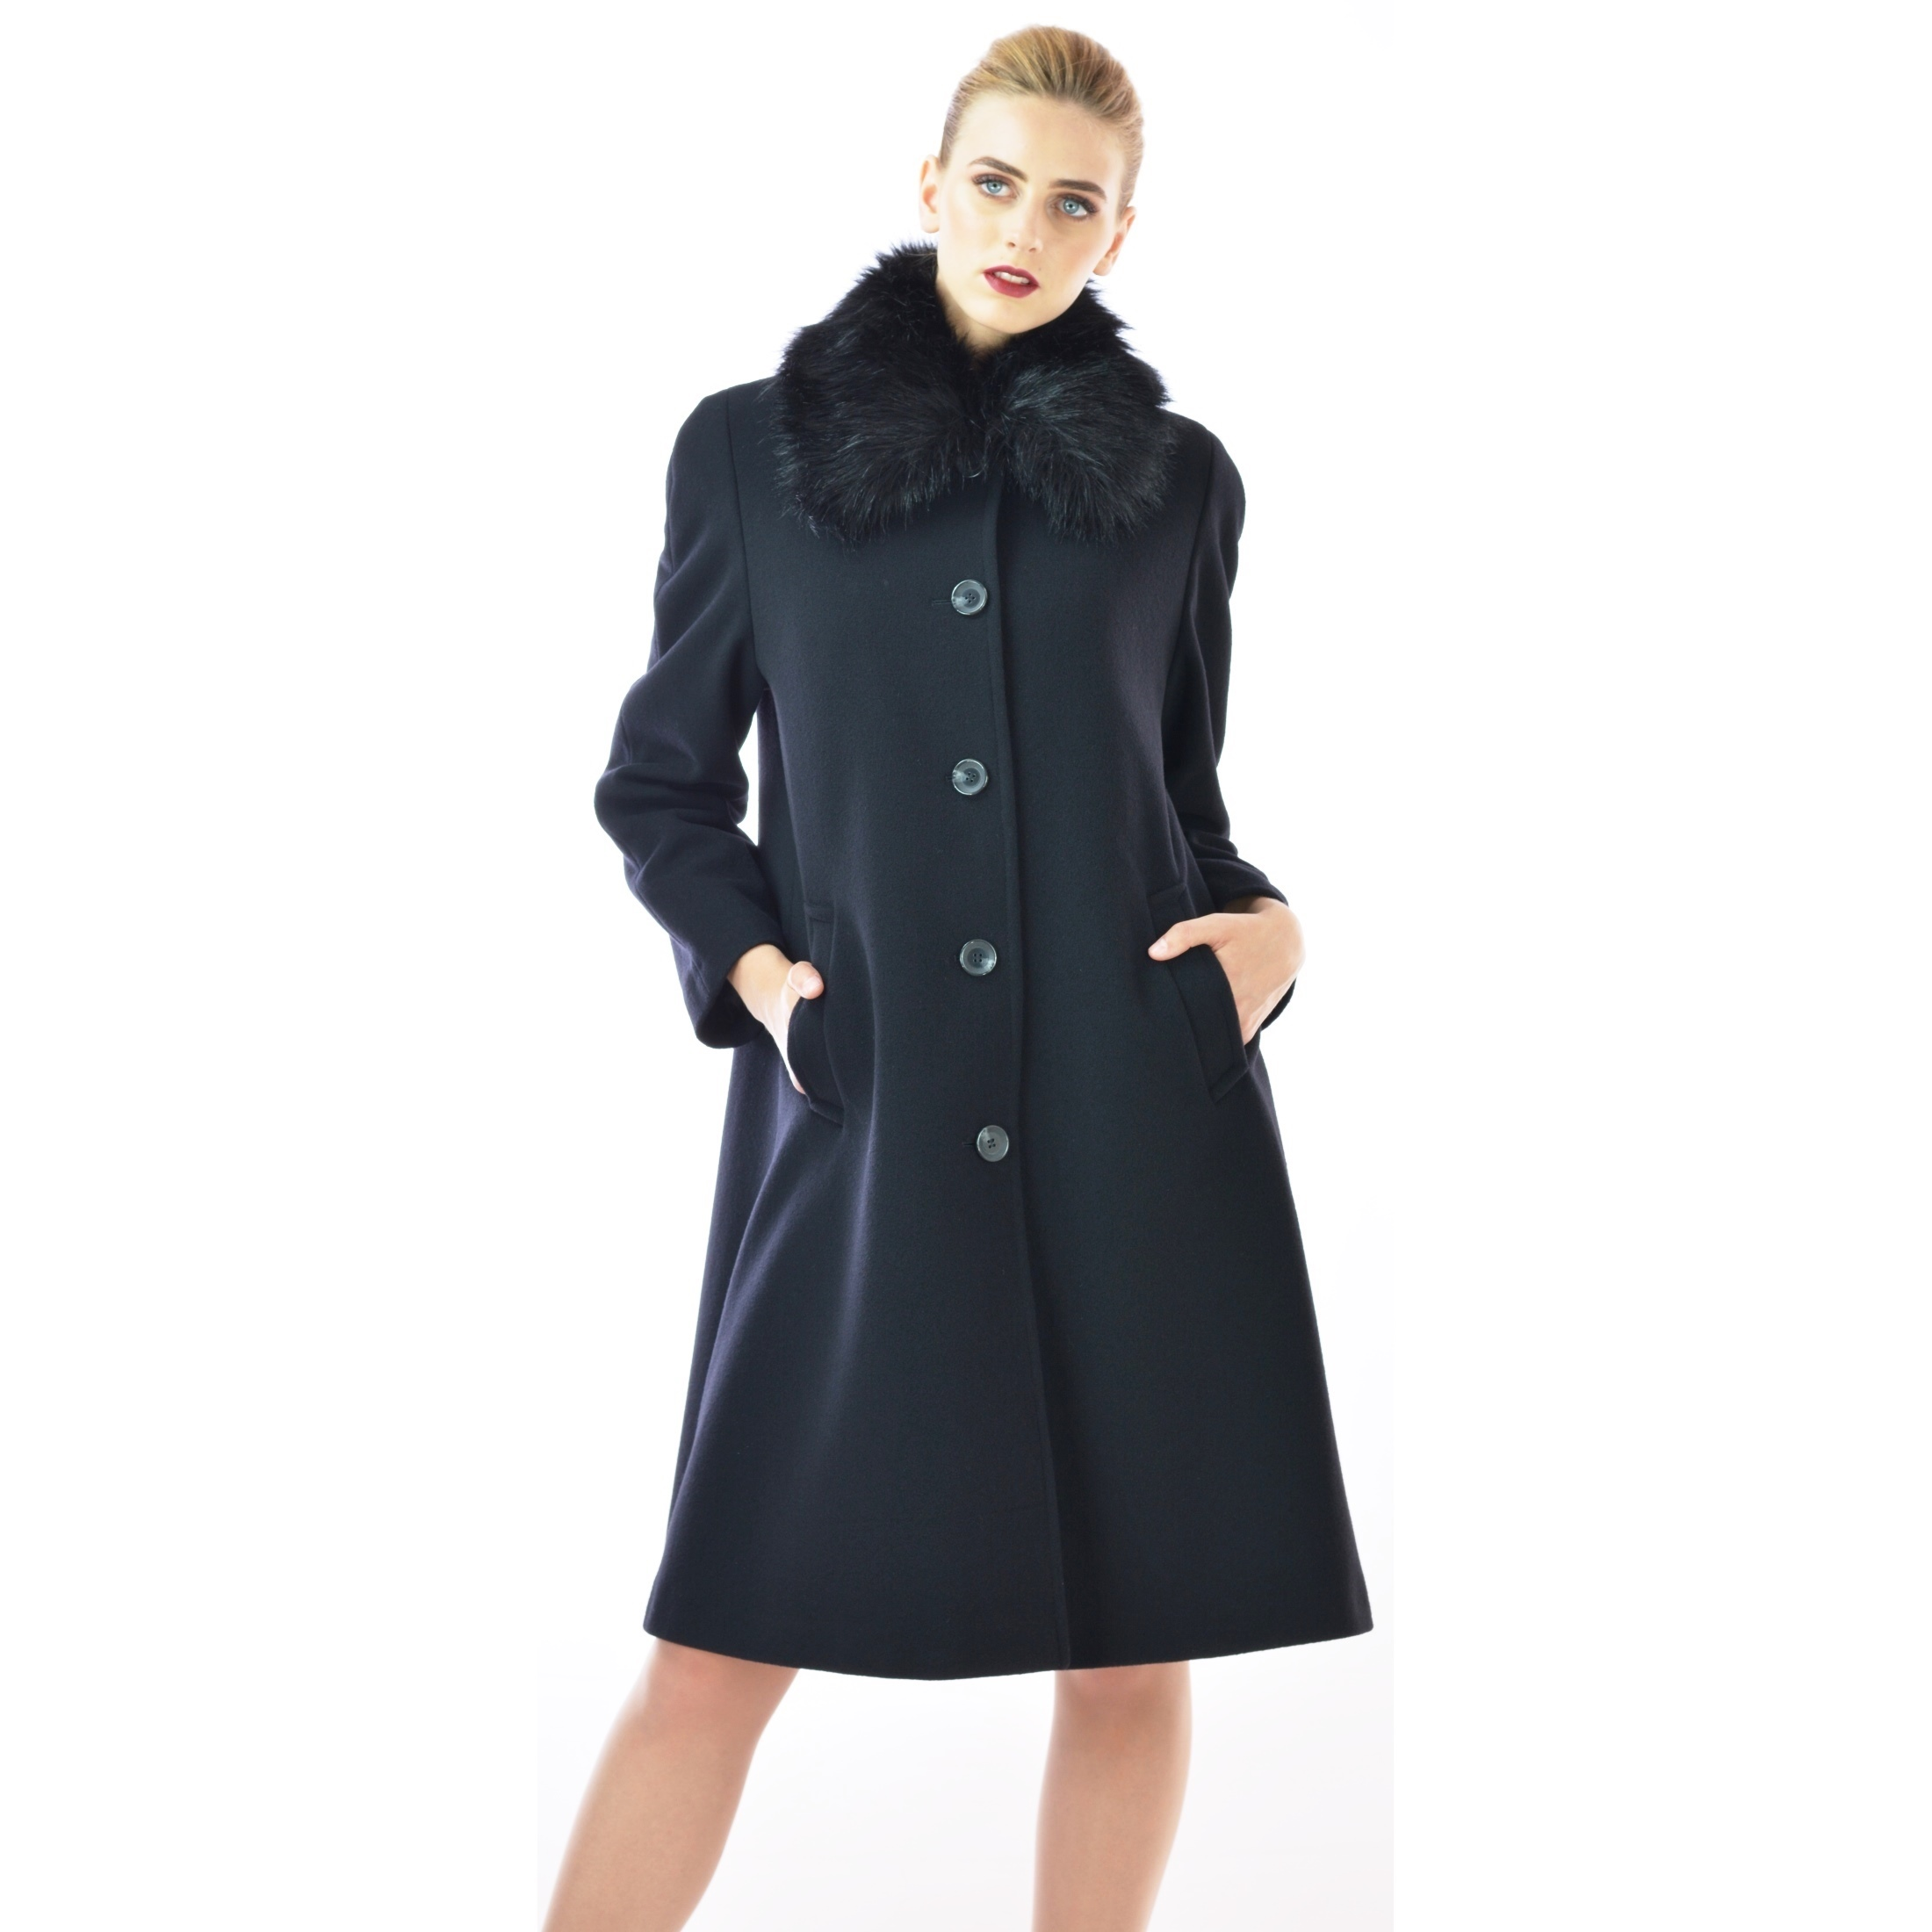 Picture of Women's Coat - M60129 BLACK